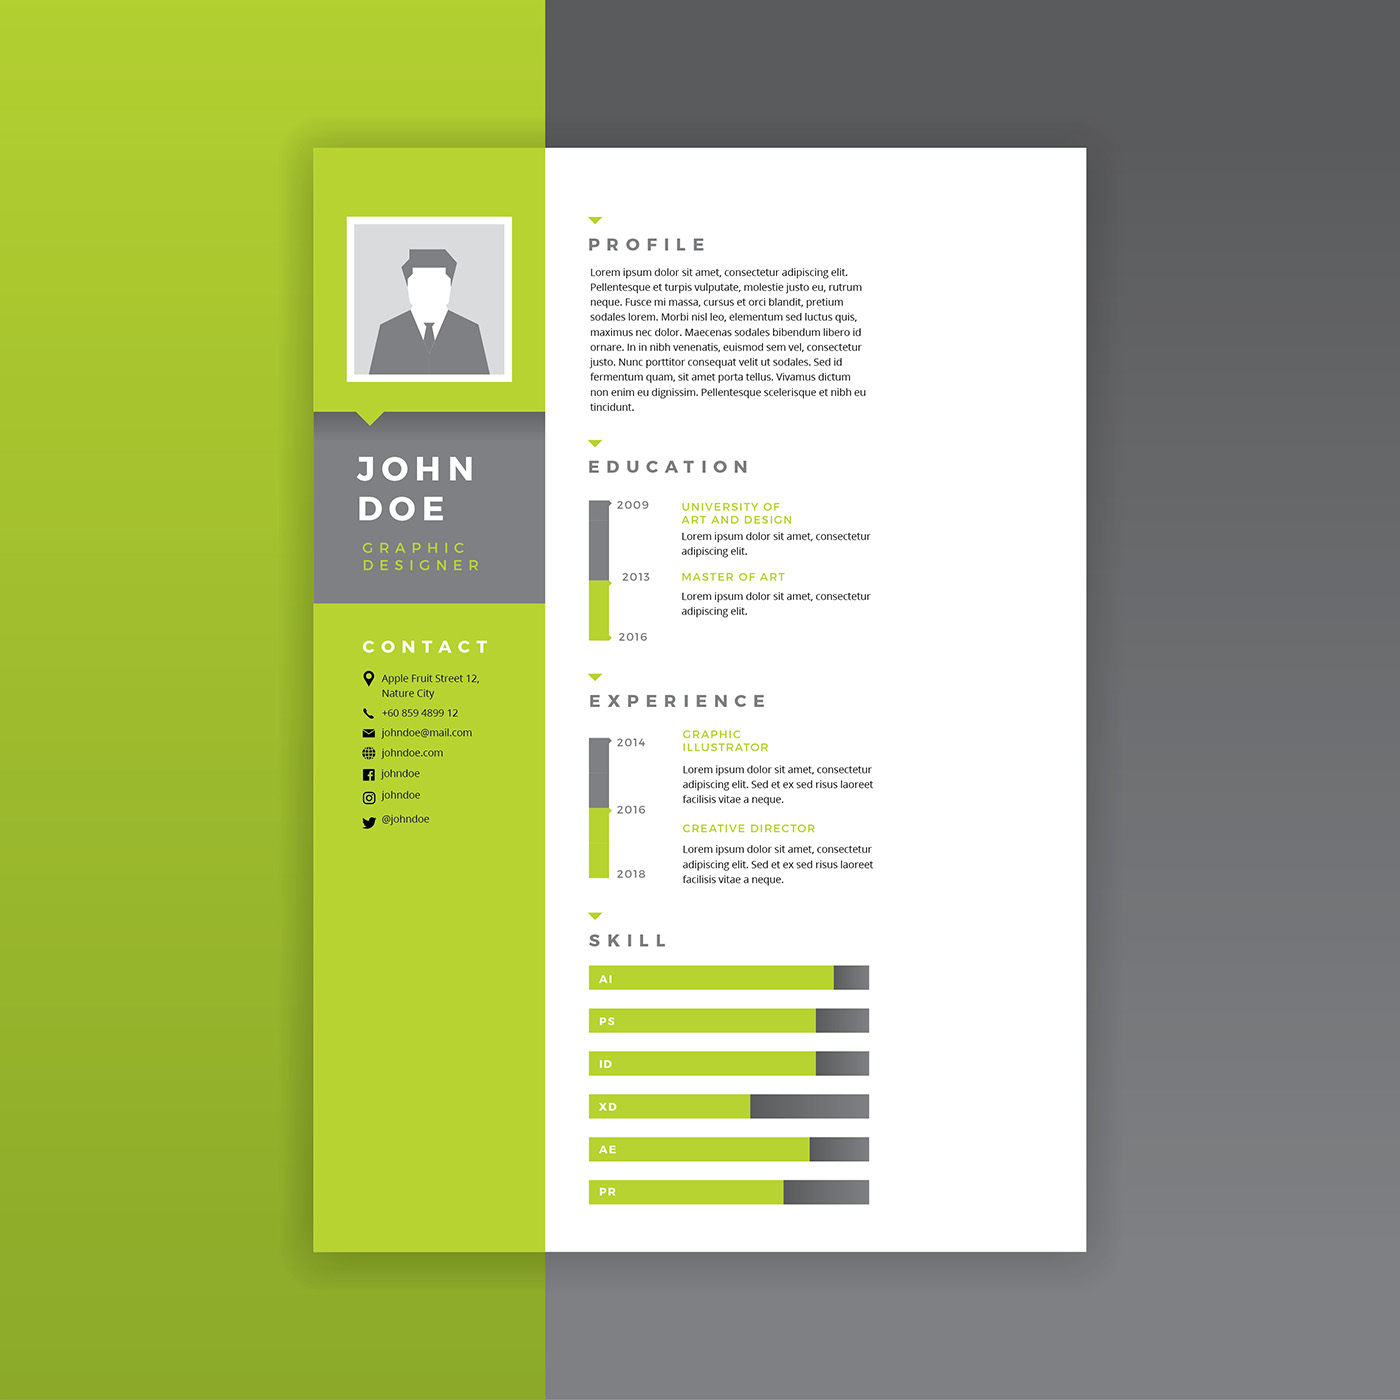 graphic designer resume green vector